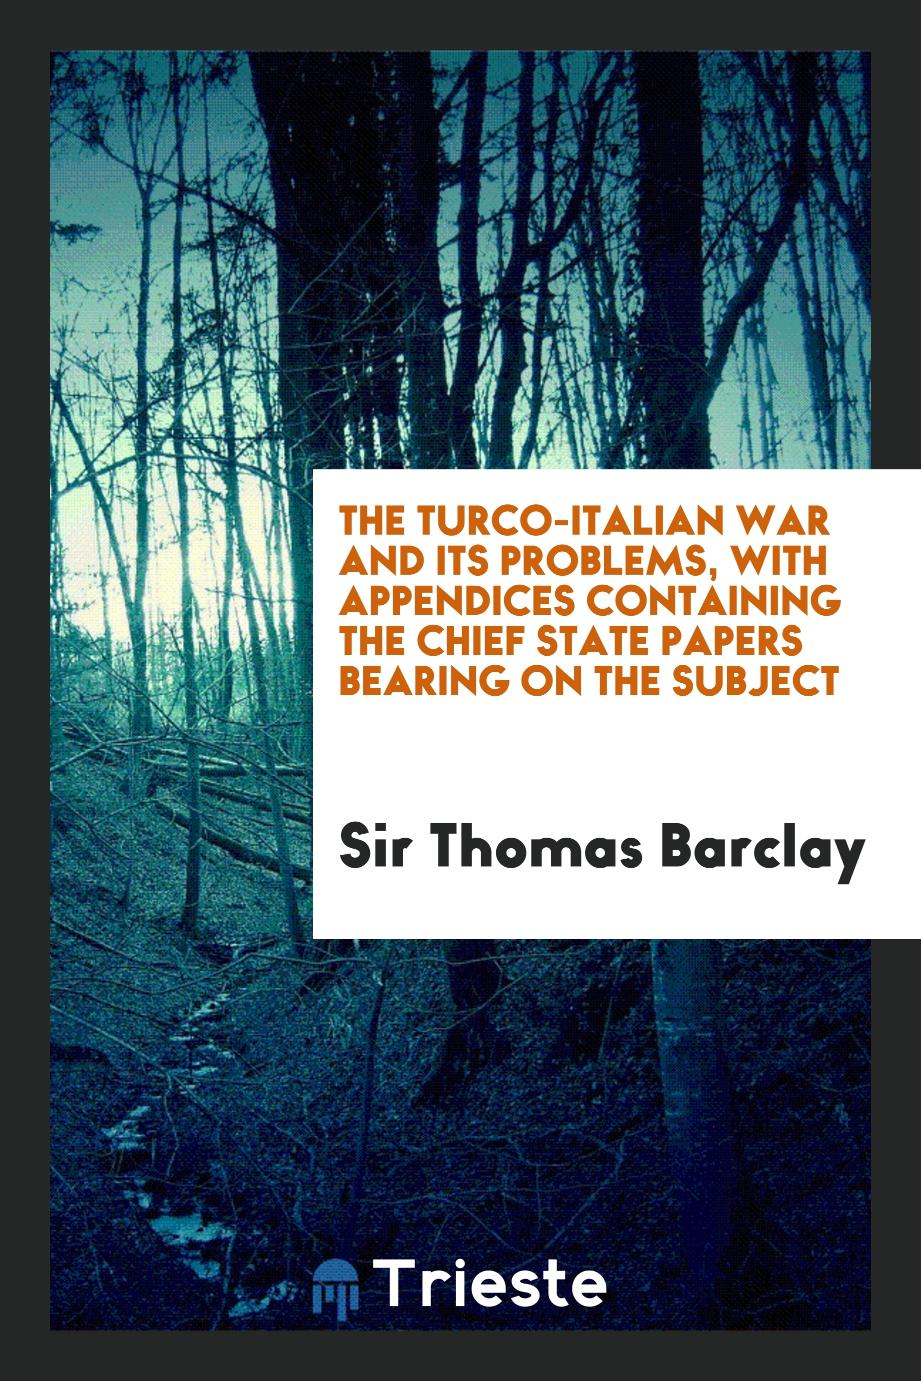 The Turco-Italian War and its problems, with appendices containing the chief state papers bearing on the subject